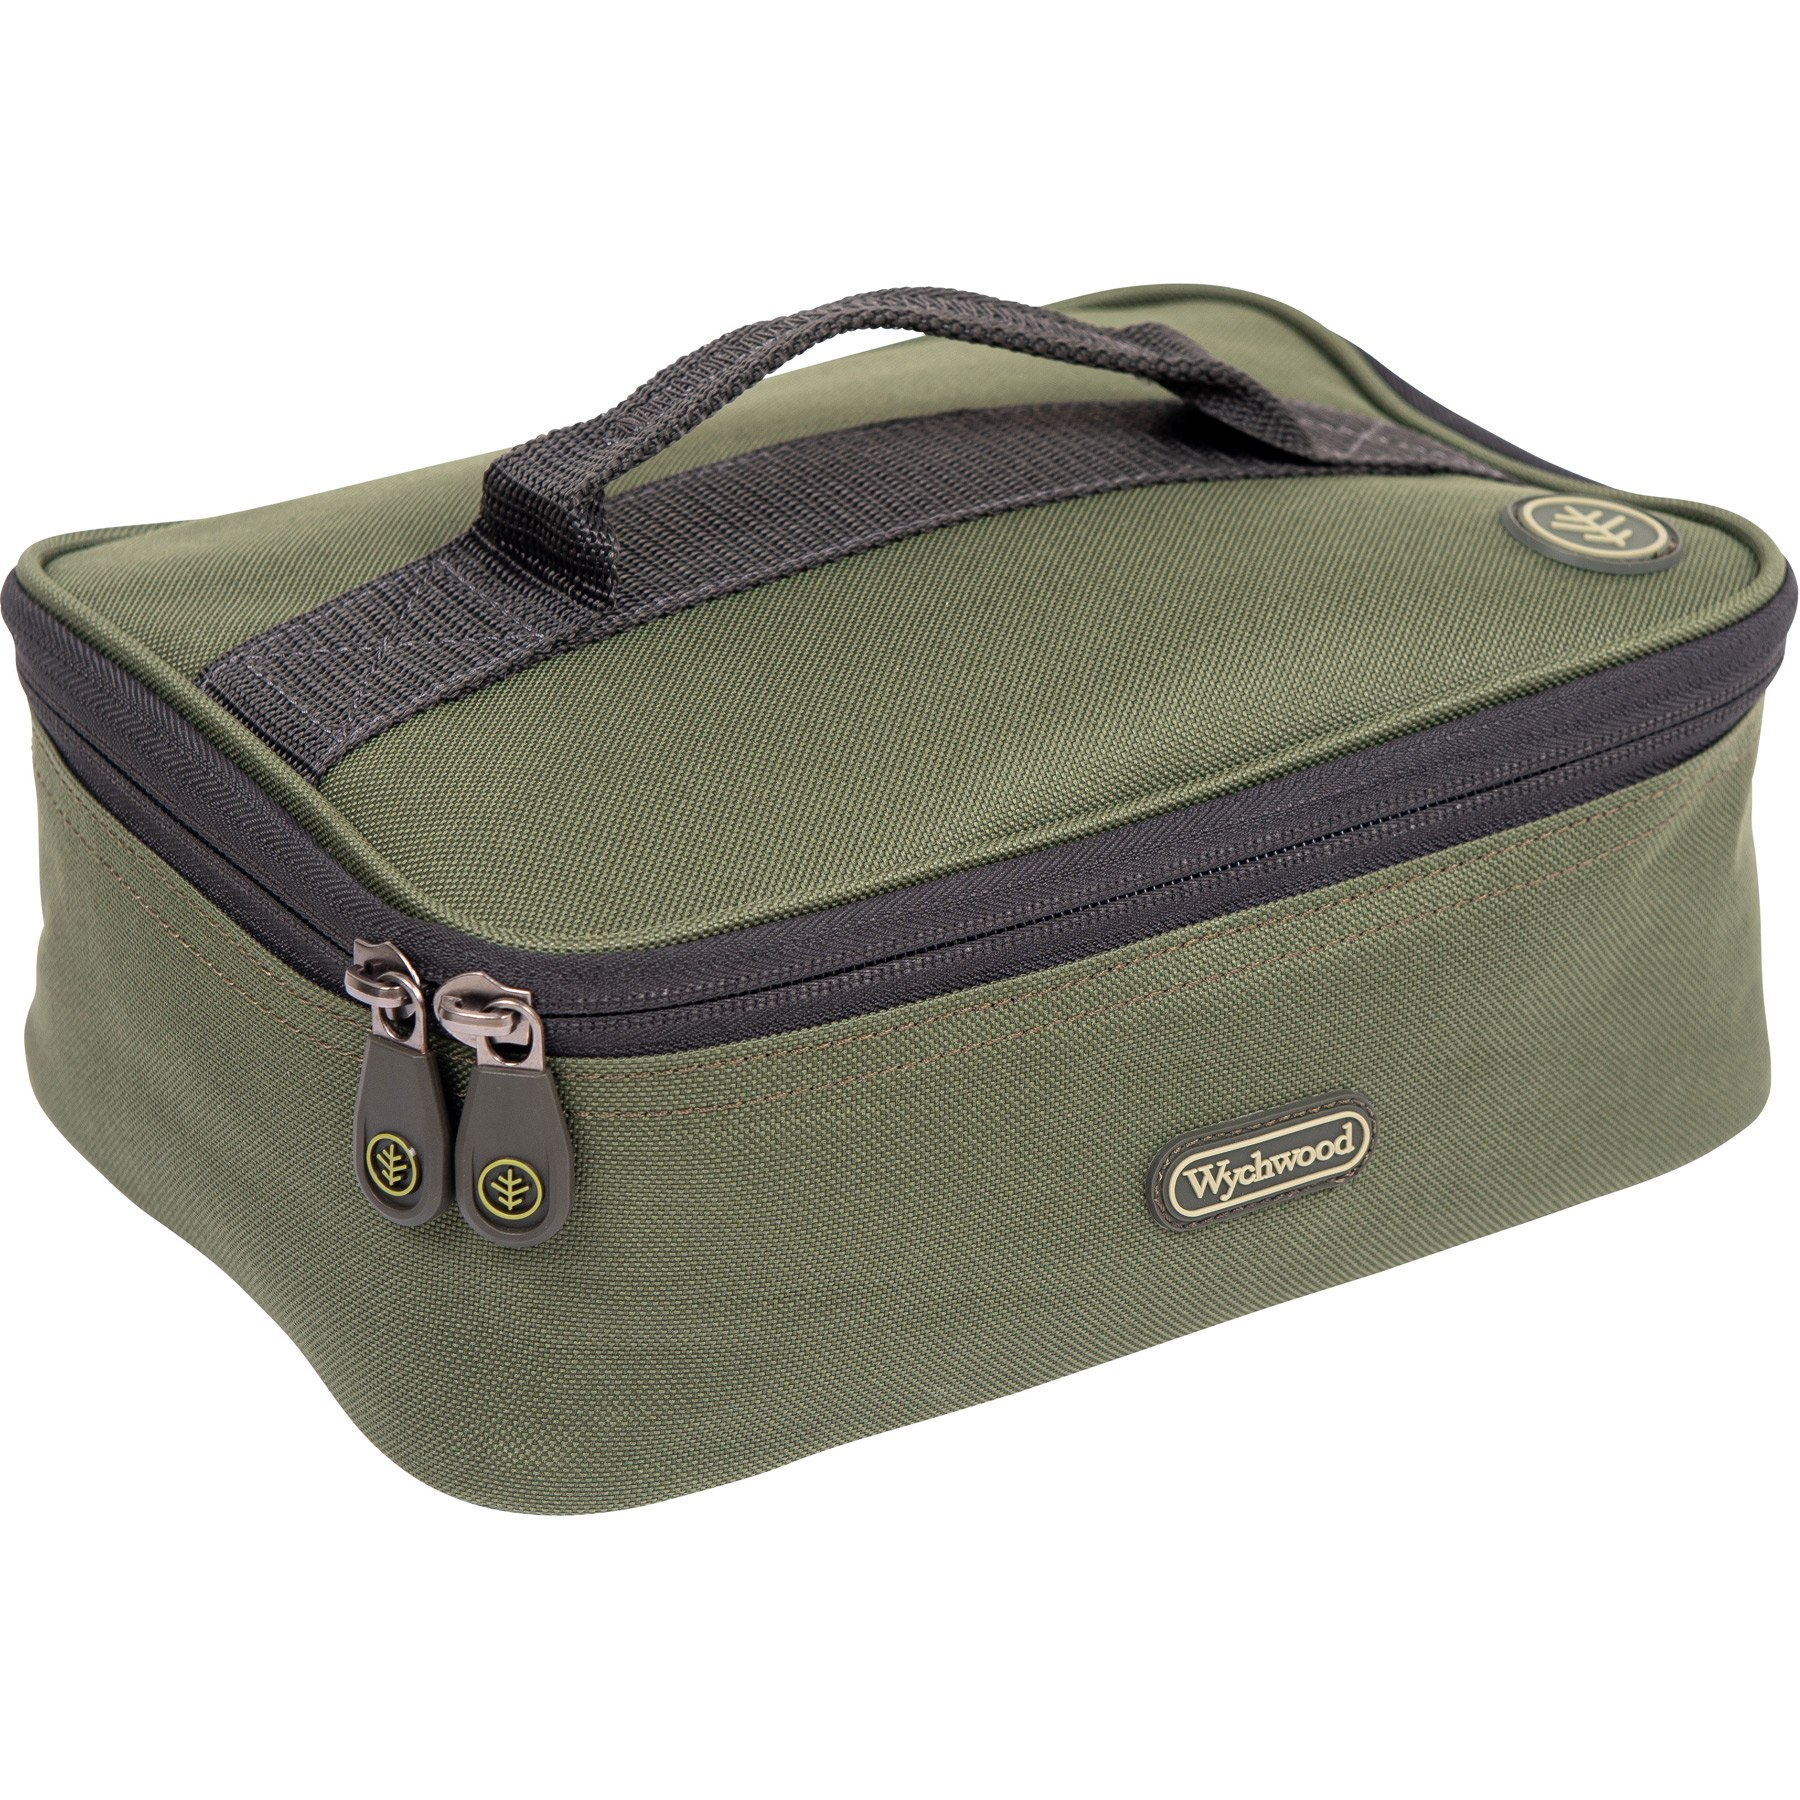 Pouzdro Wychwood Comforter Small Tackle Organiser